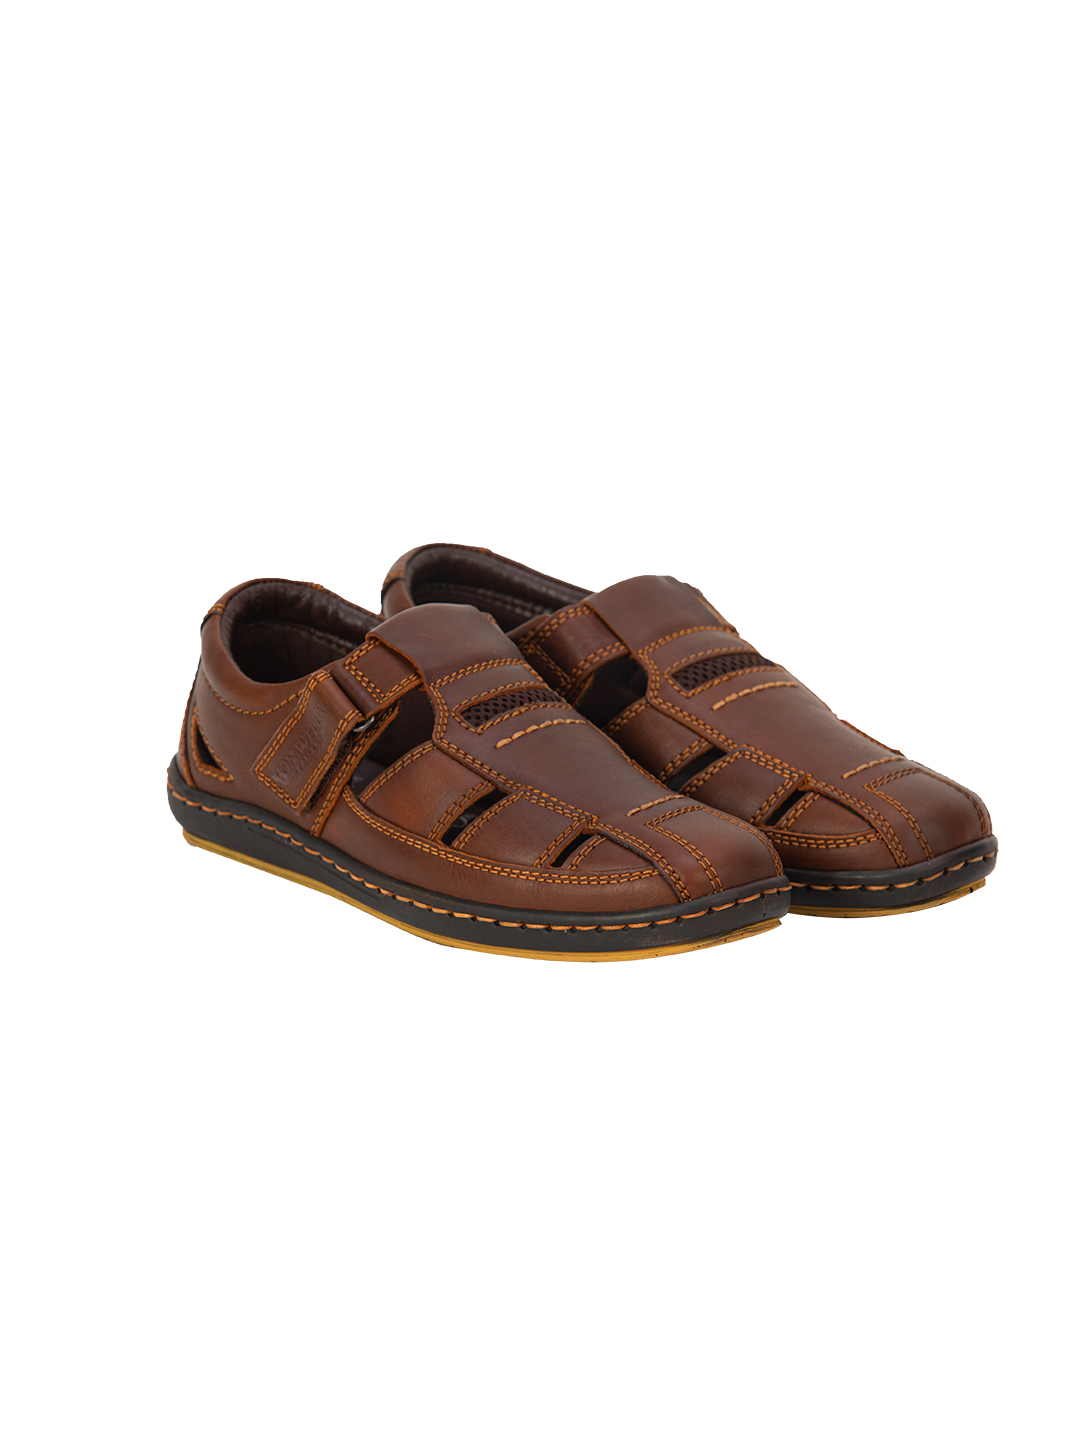 Buy Von Wellx Germany Comfort Brown Canter Sandals Online in Muscat